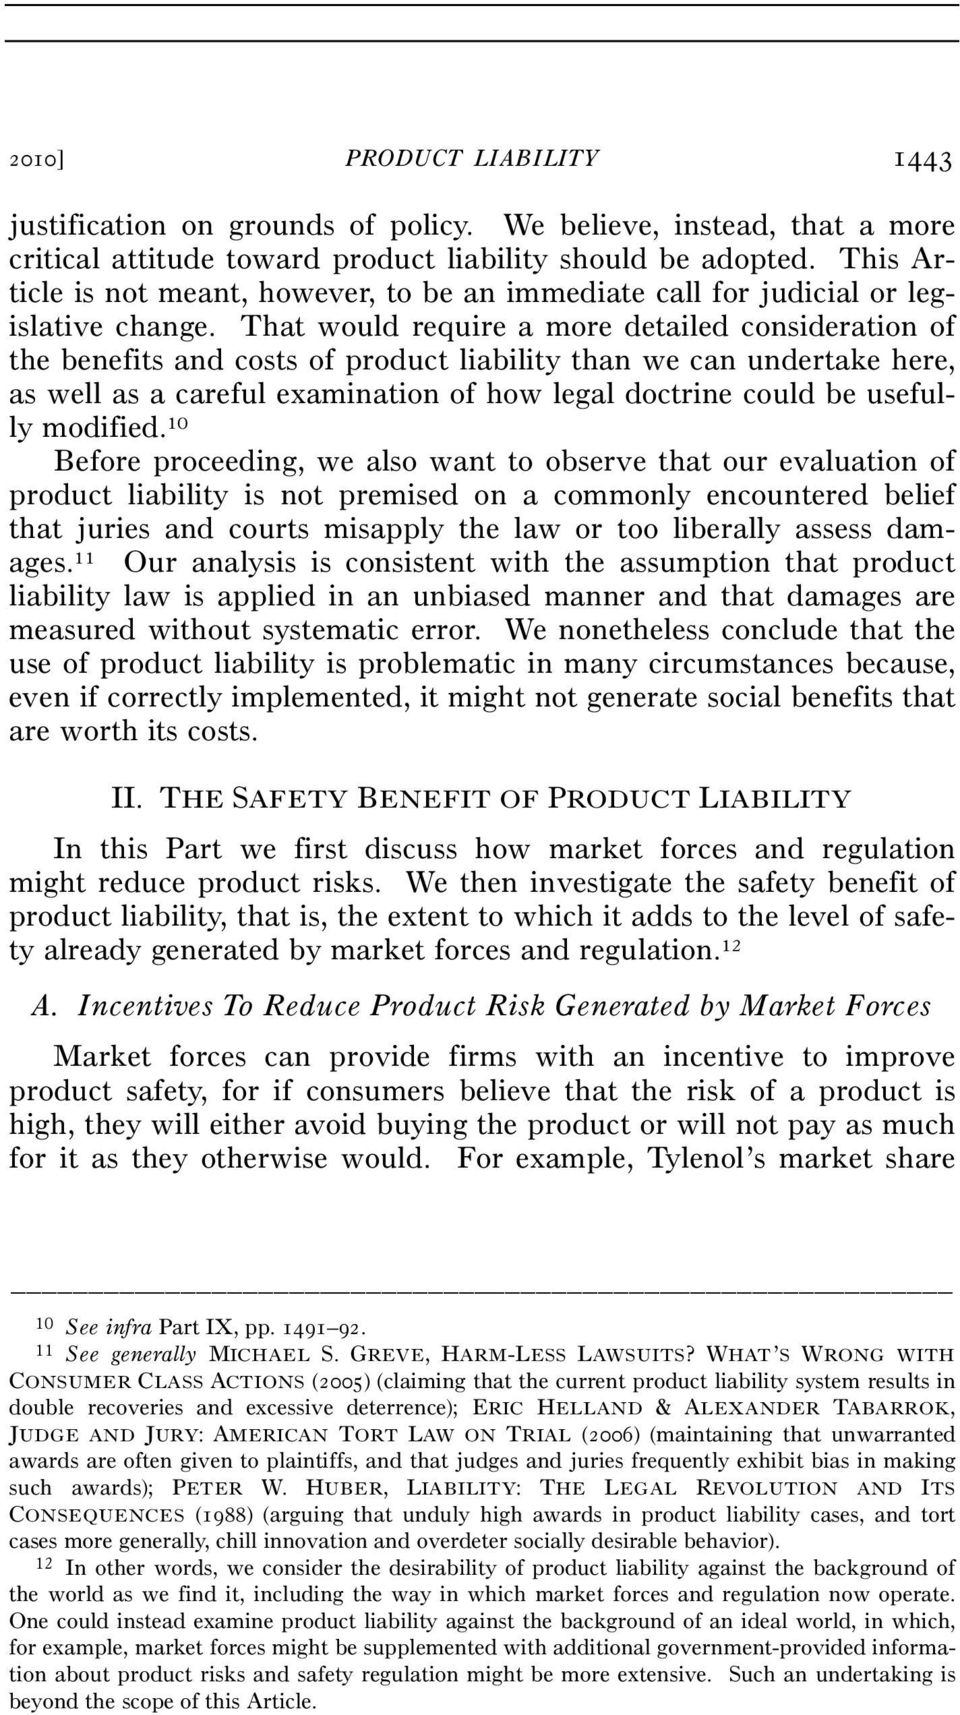 That would require a more detailed consideration of the benefits and costs of product liability than we can undertake here, as well as a careful examination of how legal doctrine could be usefully